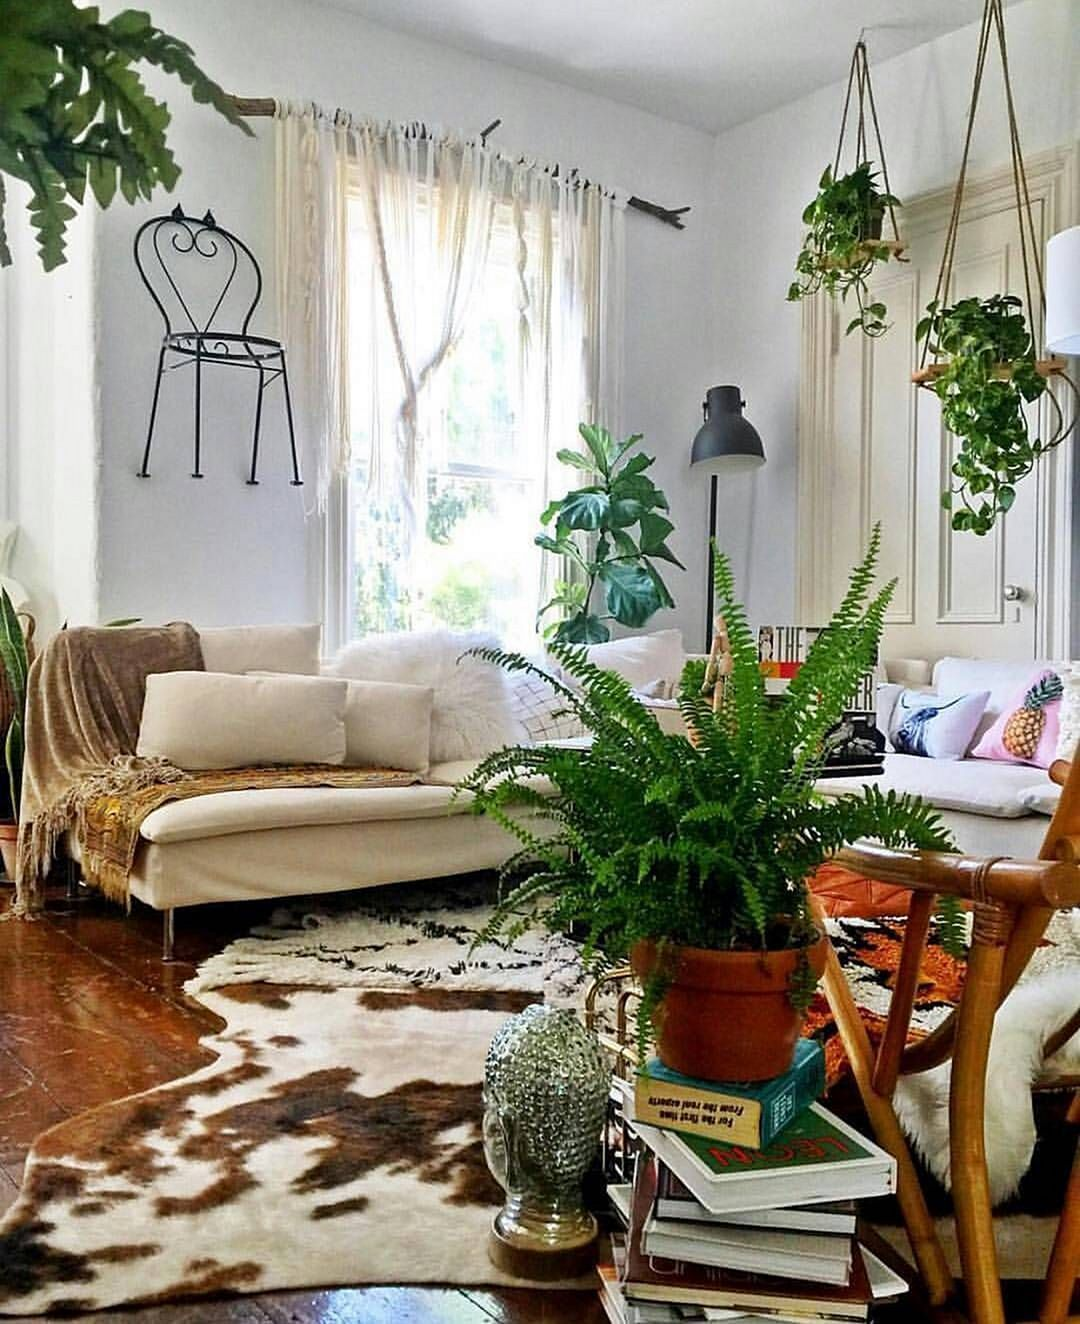 15 Beautiful Living Room With Hanging Plants Ideas ...